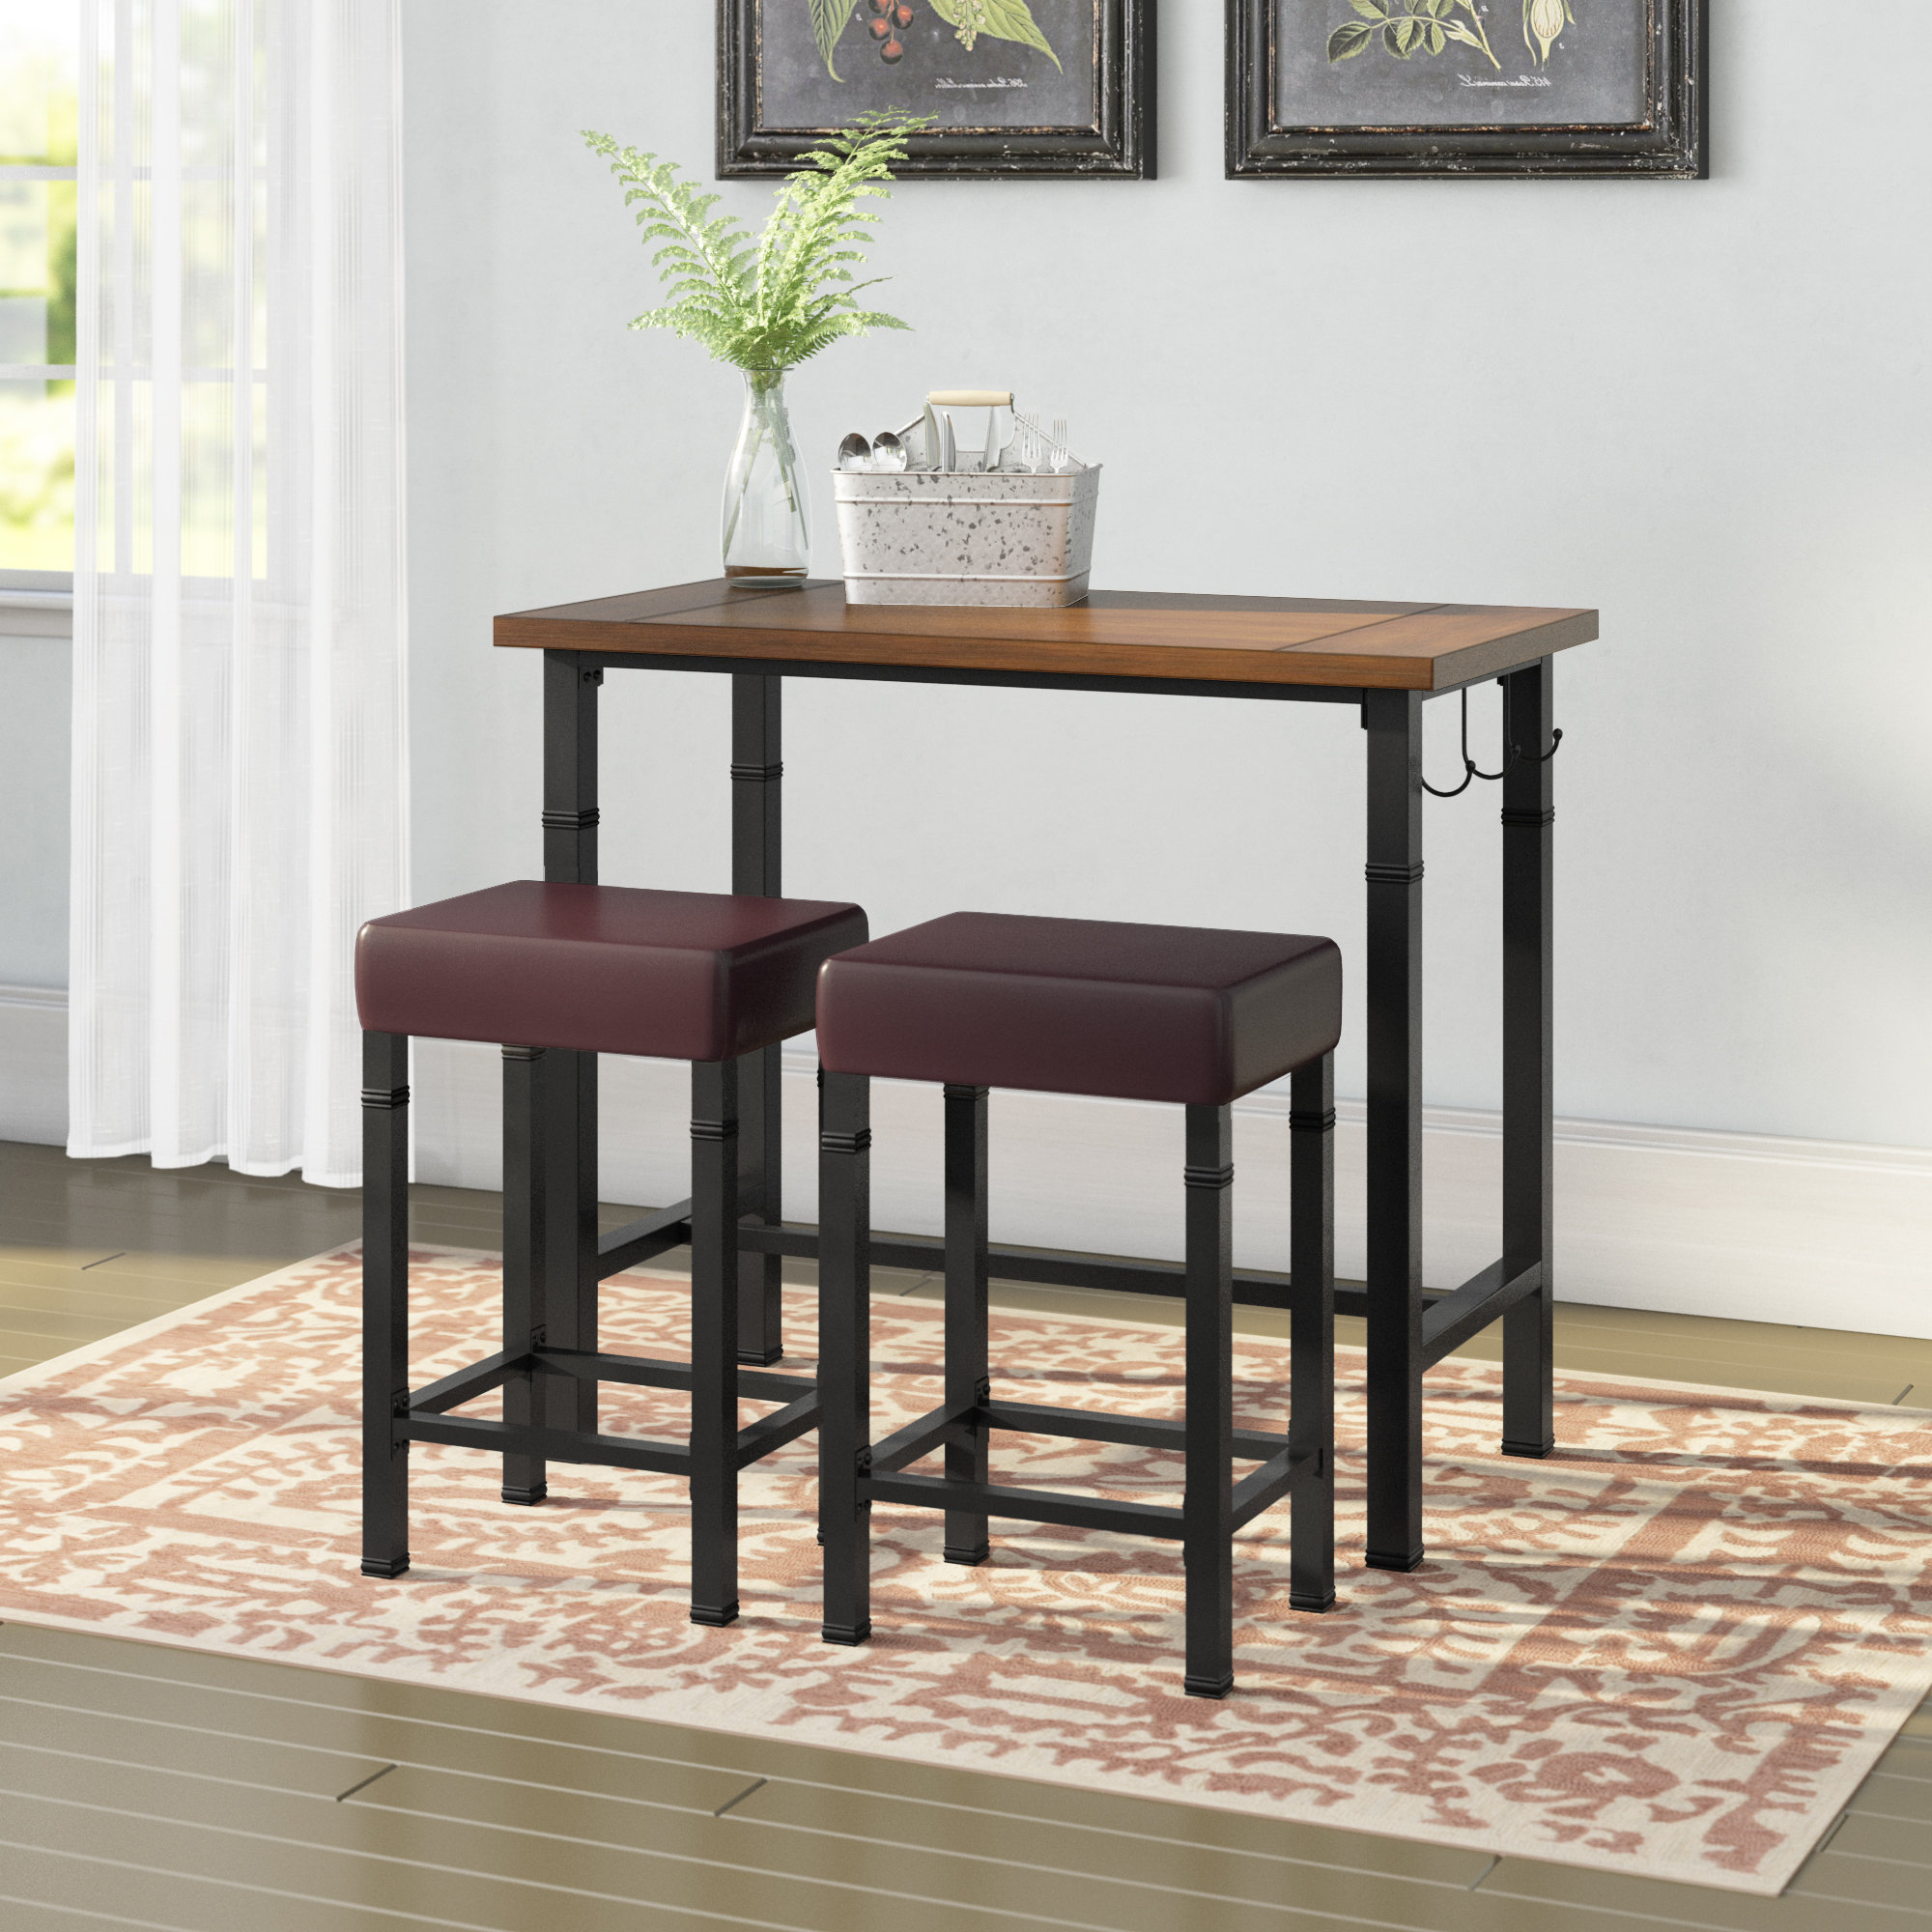 Wayfair Pertaining To Fashionable Crownover 3 Piece Bar Table Sets (View 17 of 20)